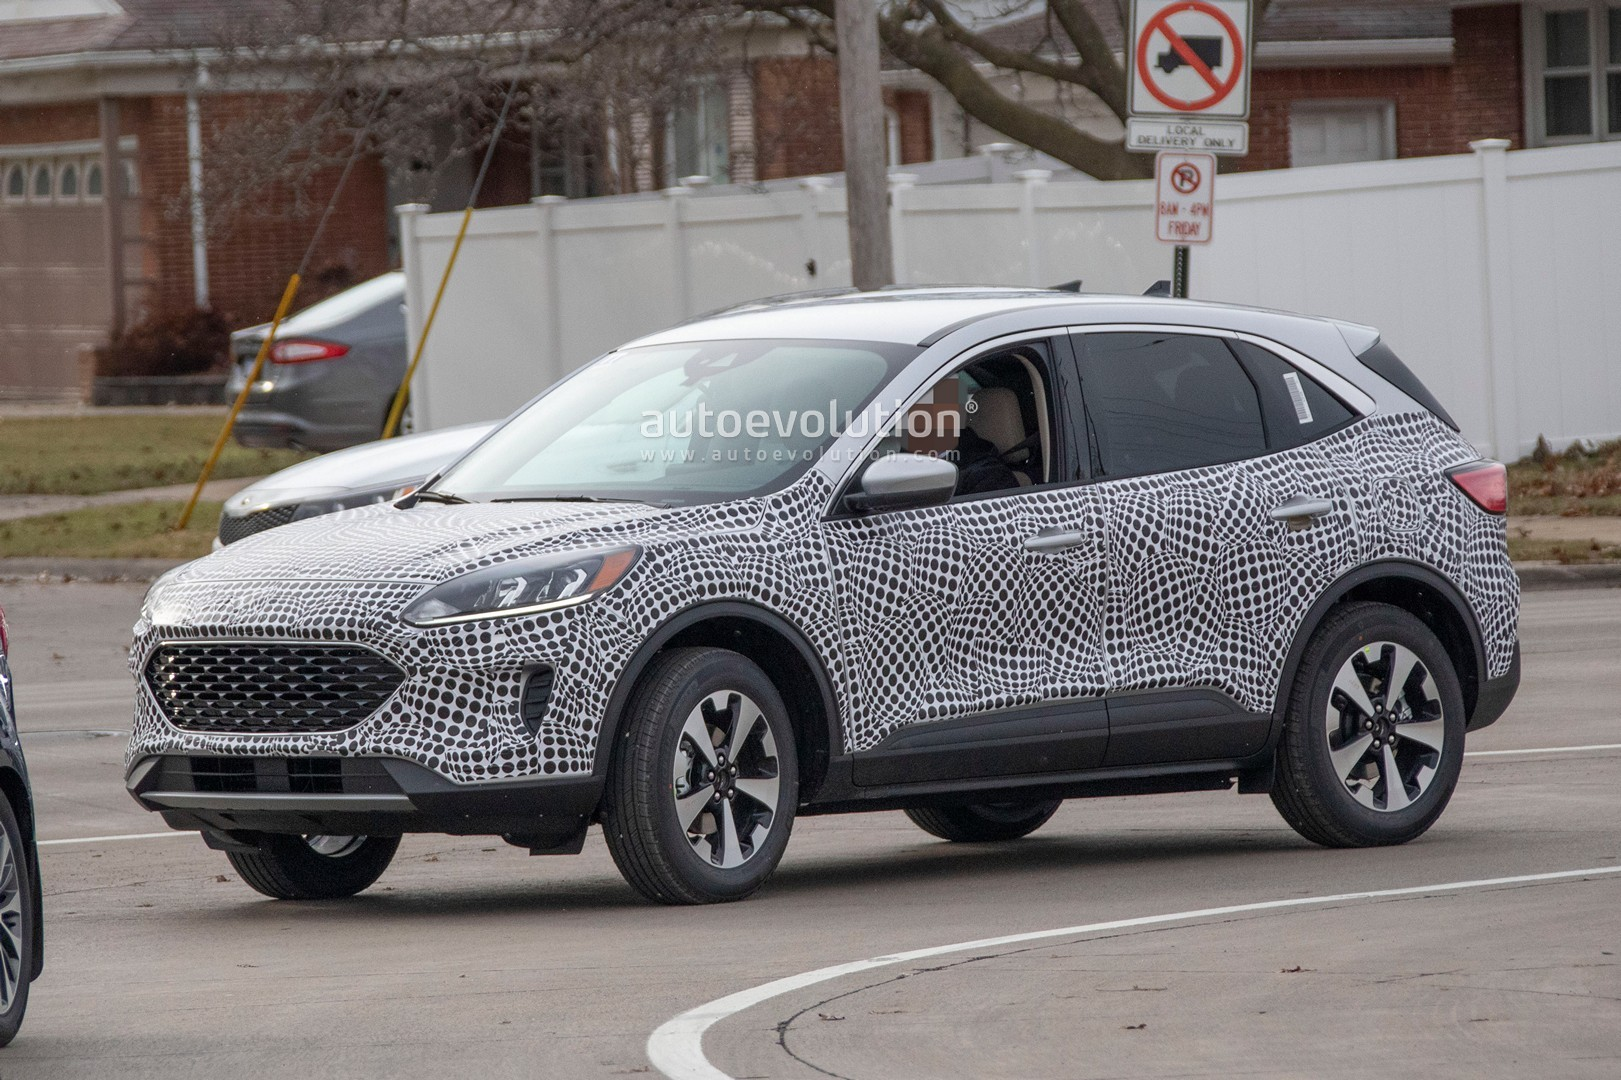 2020 Ford Kuga Hybrid Specs And Release Date >> 2020 Ford Escape Kuga Spied With Production Body Is A Like Jaguar